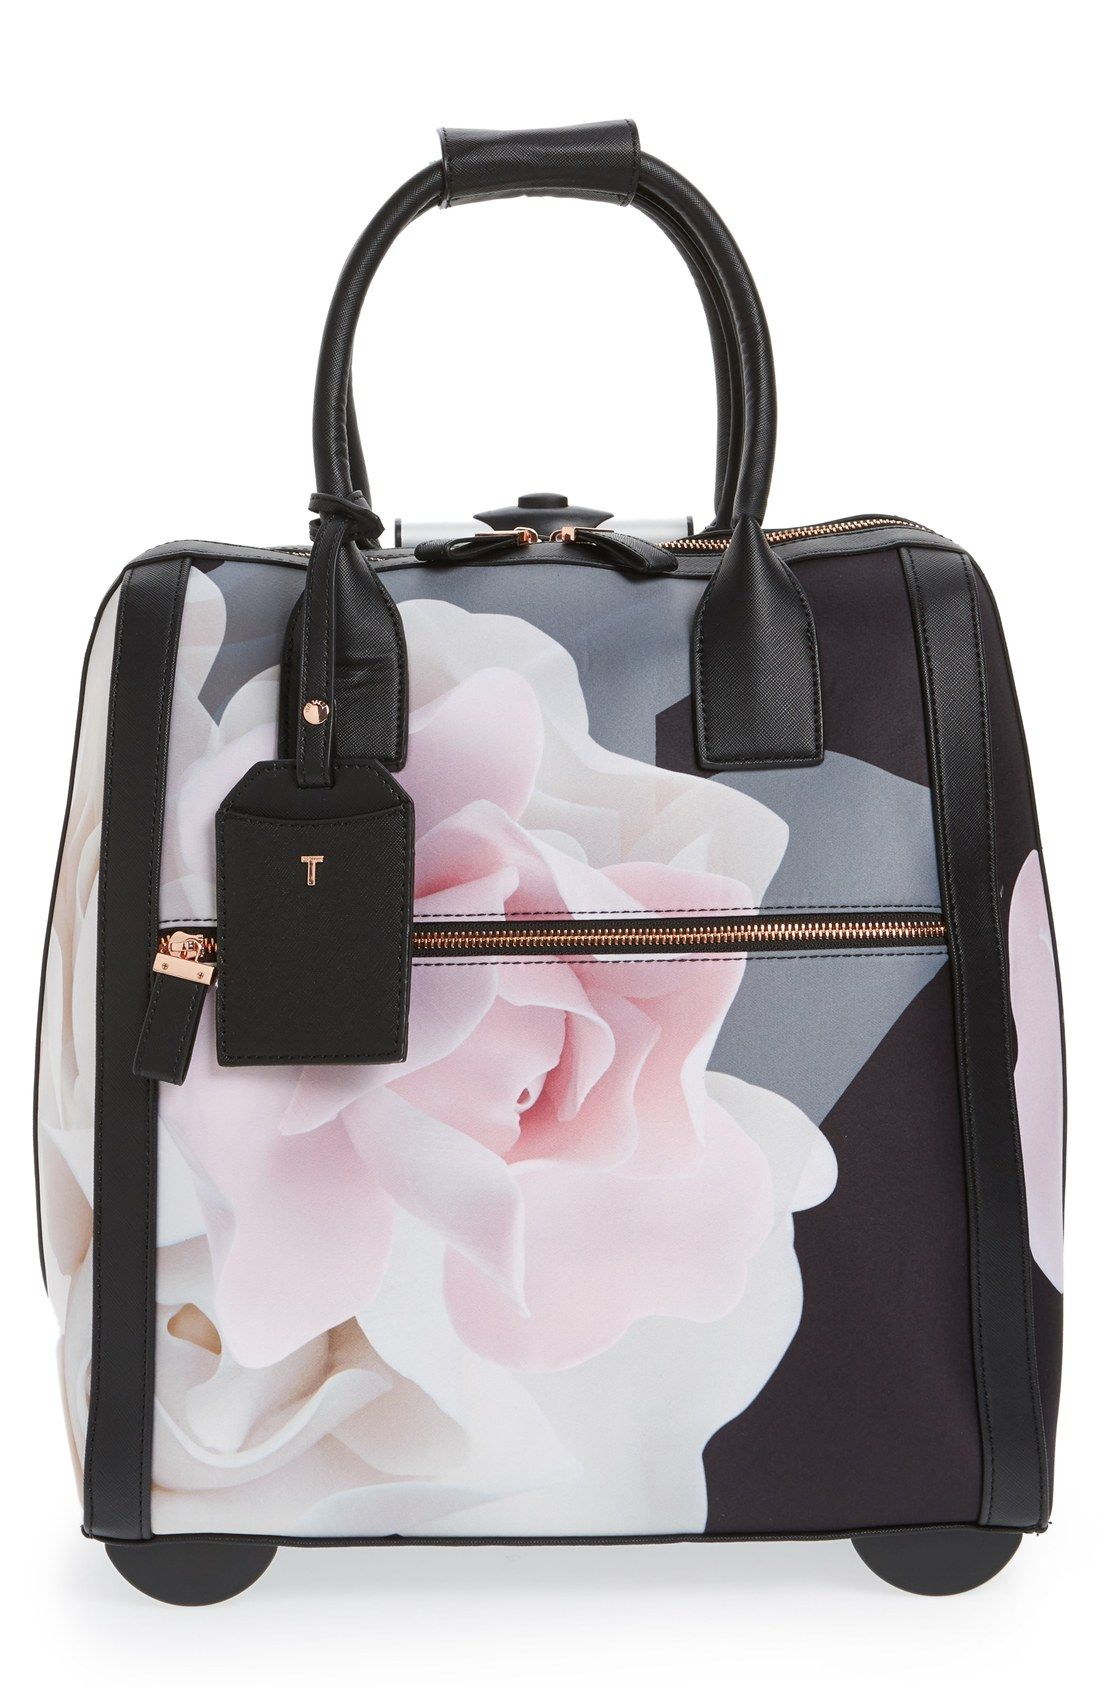 80ca65333 Free shipping and returns on Ted Baker London  Porcelain Rose - Odina  Travel  Bag at Nordstrom.com. With its lush photorealistic rose print and gleaming  ...